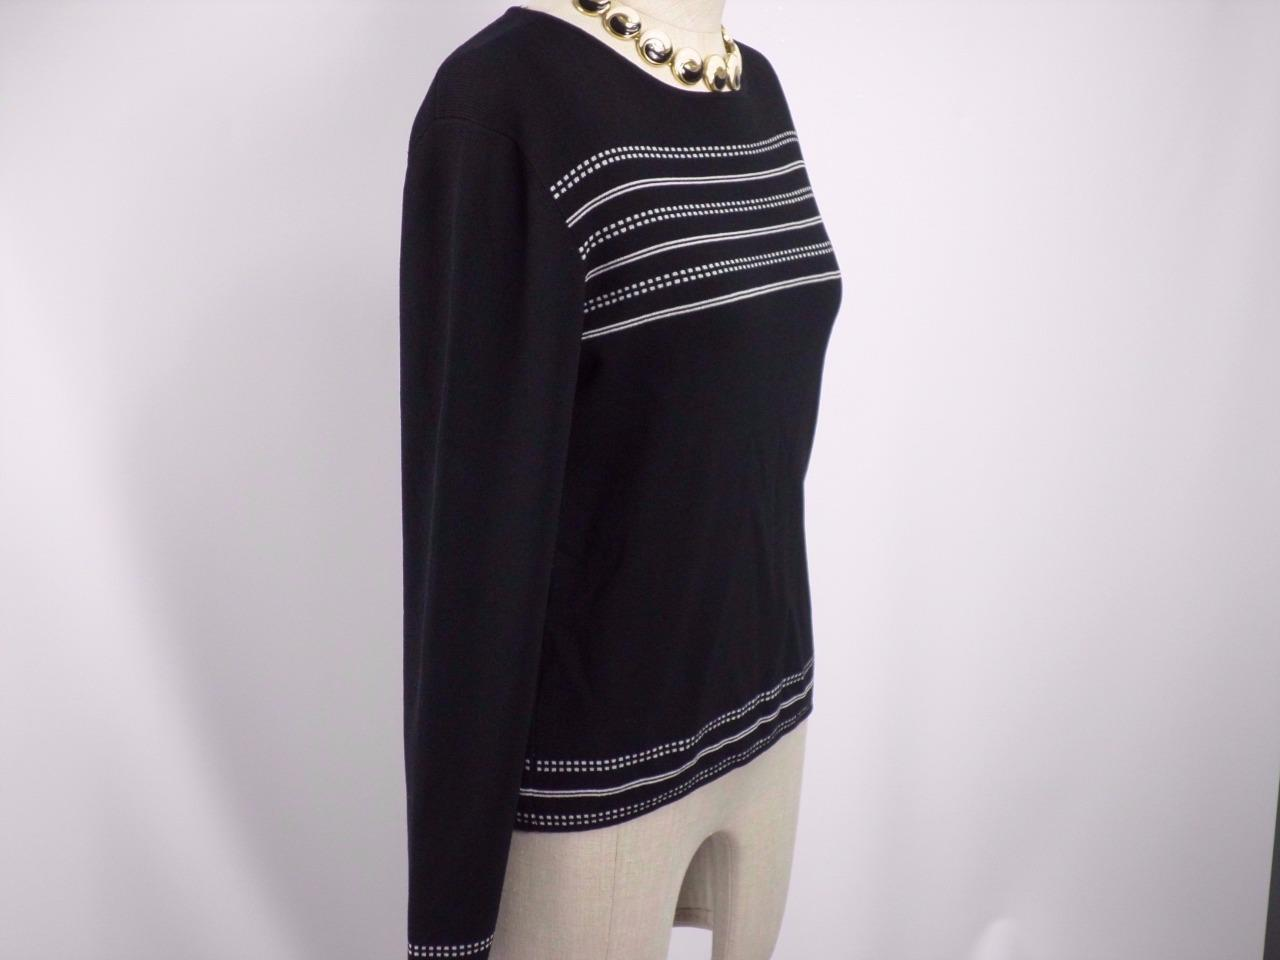 GEOFFREY BEENE Stretch black Crew Neck Long Sleeve Pull Over top Blouse Size M